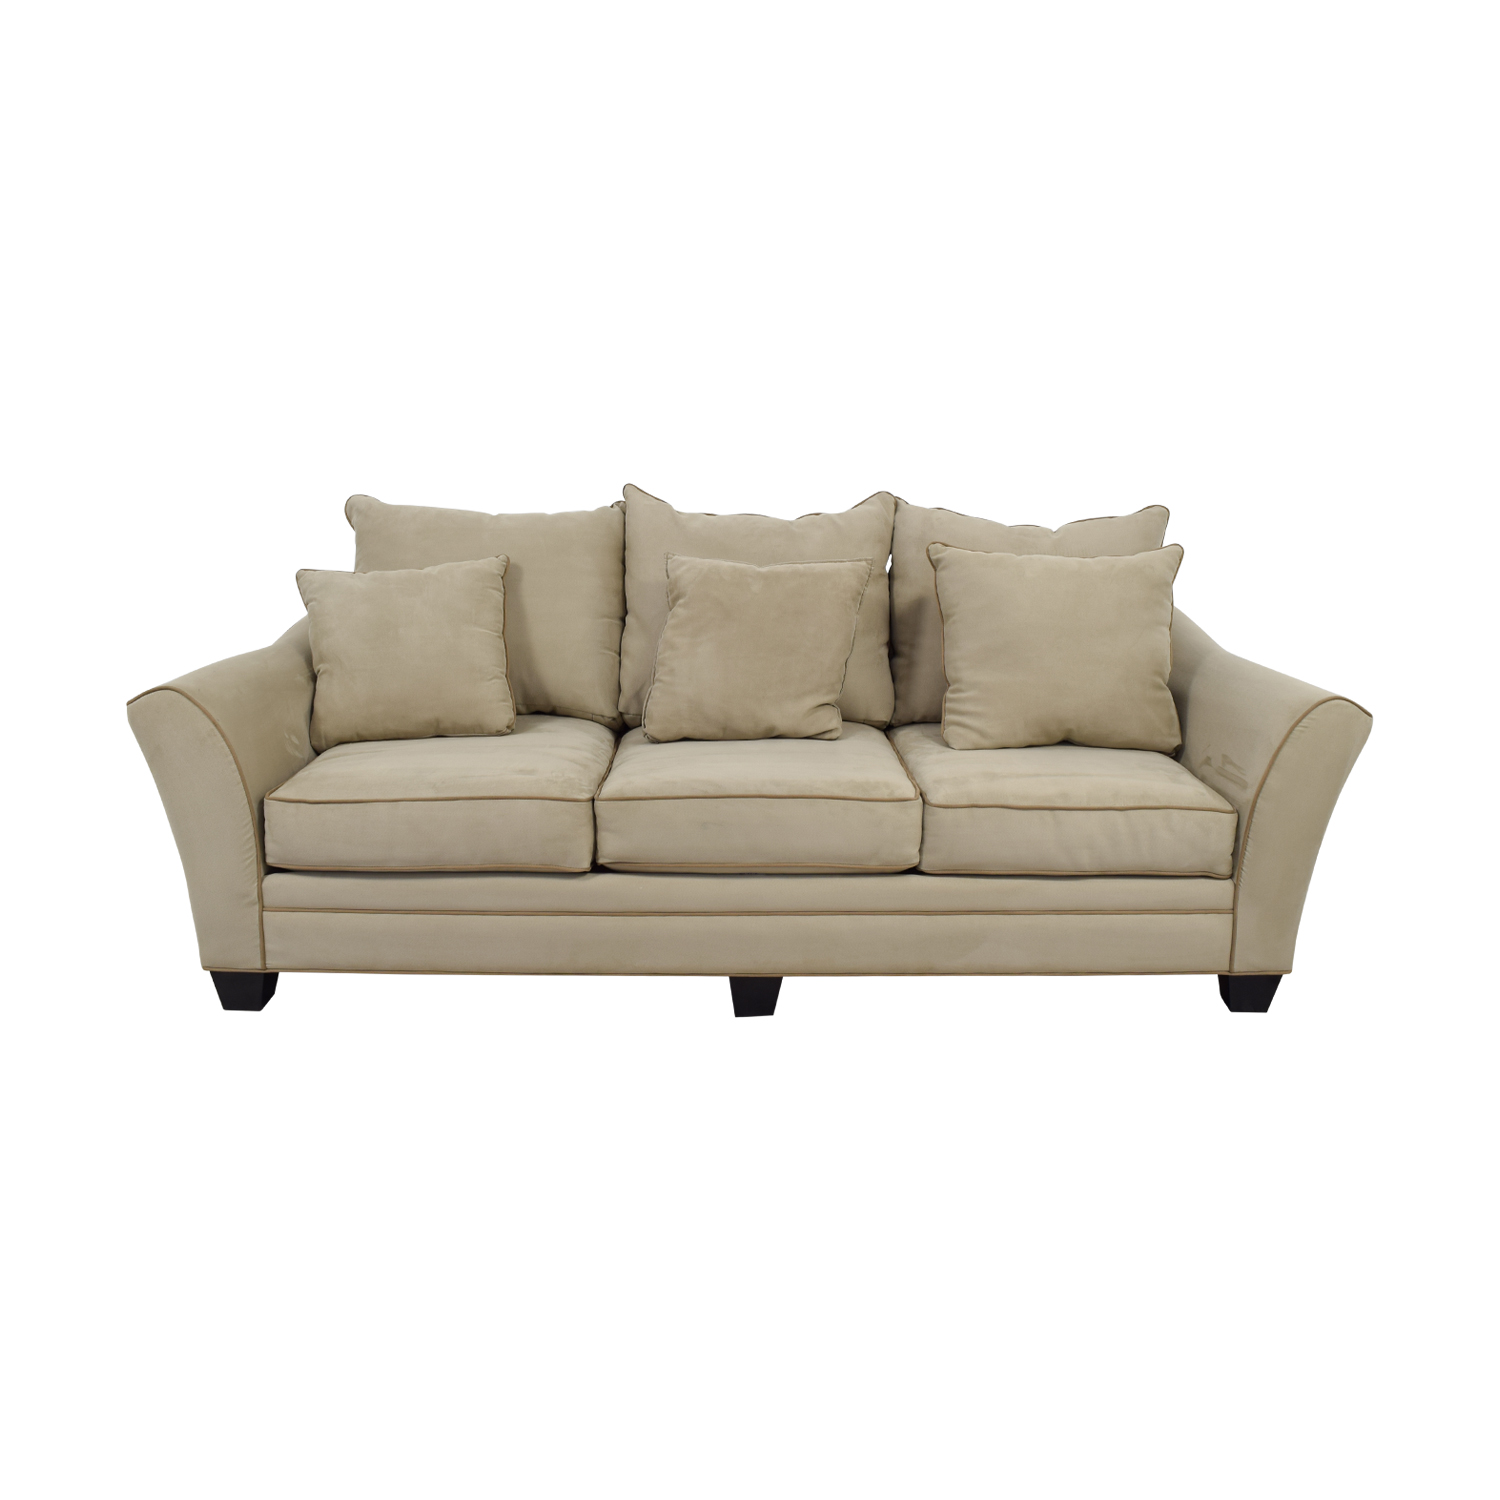 Raymour & Flanigan Raymour & Flanigan Beige Three-Cushion Sofa Classic Sofas